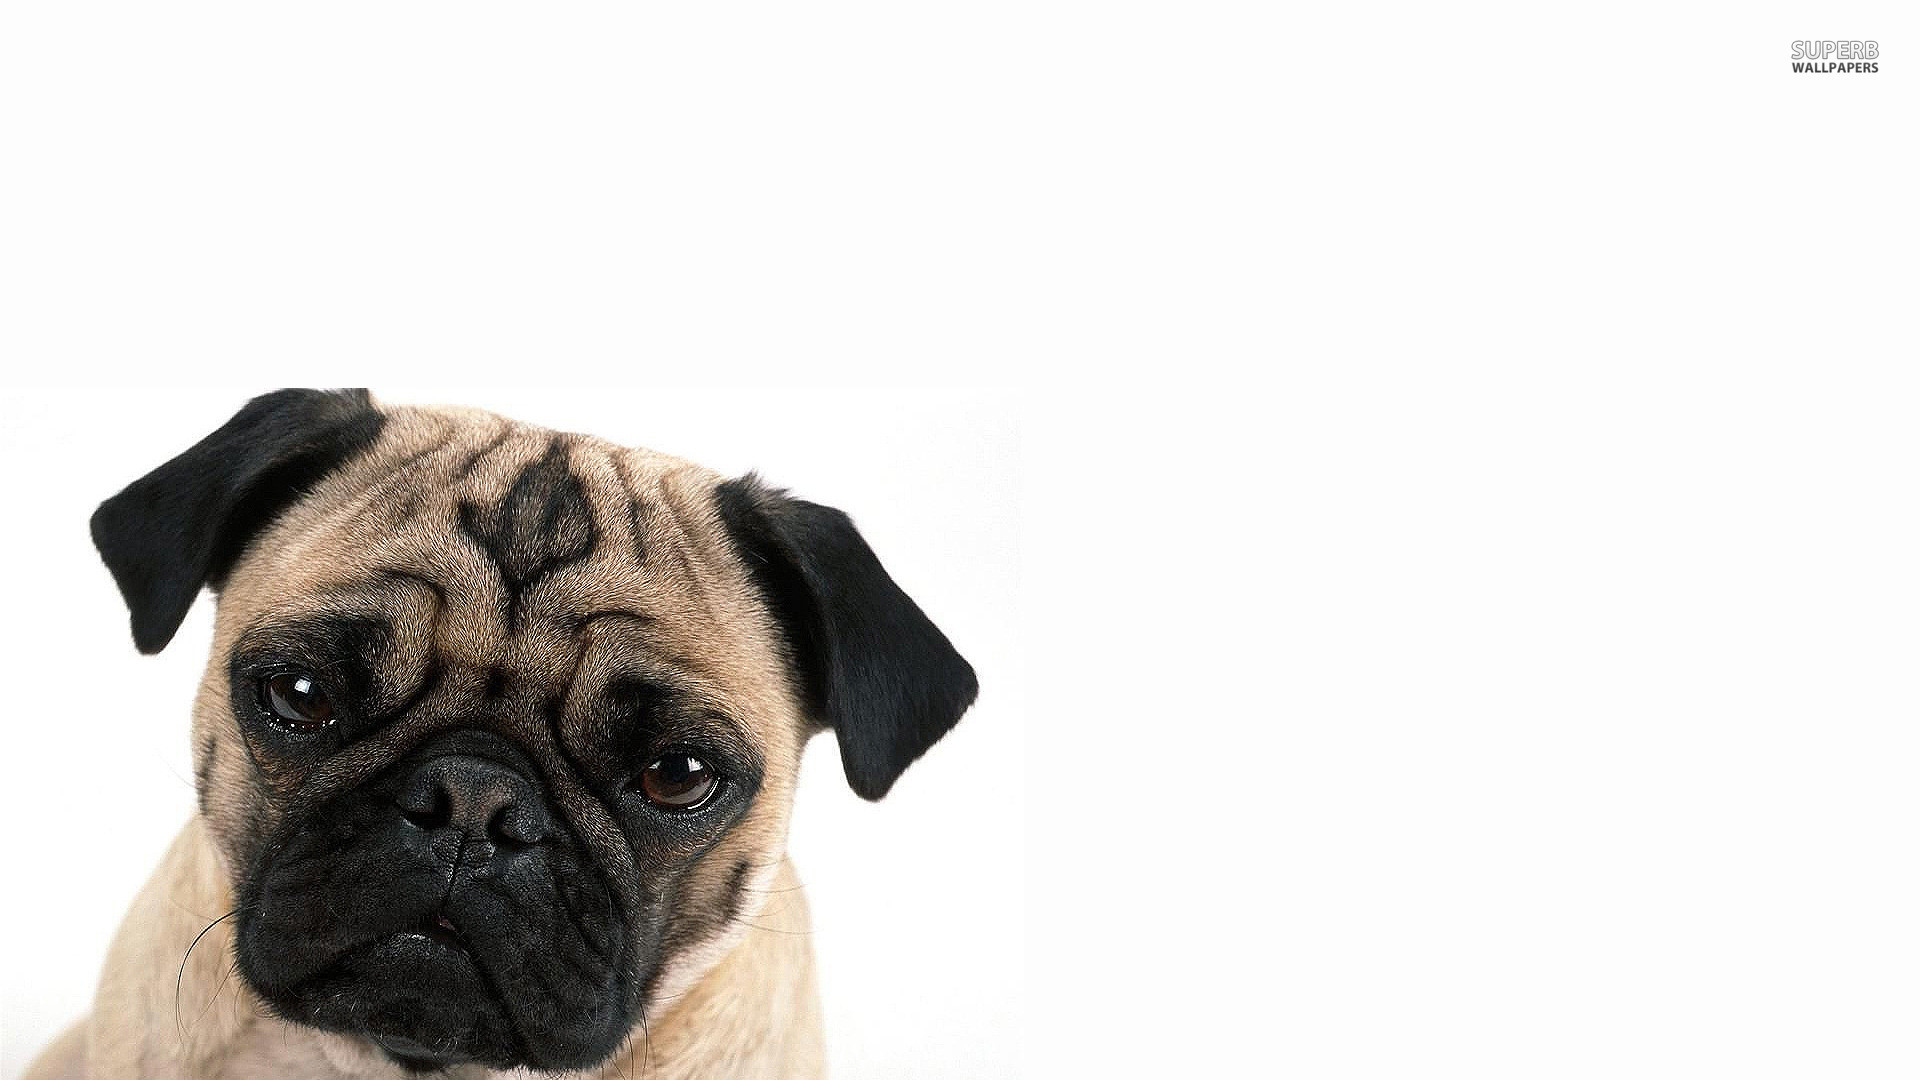 Pug Iphone Wallpaper: Cute Pug Wallpapers (69+ Images